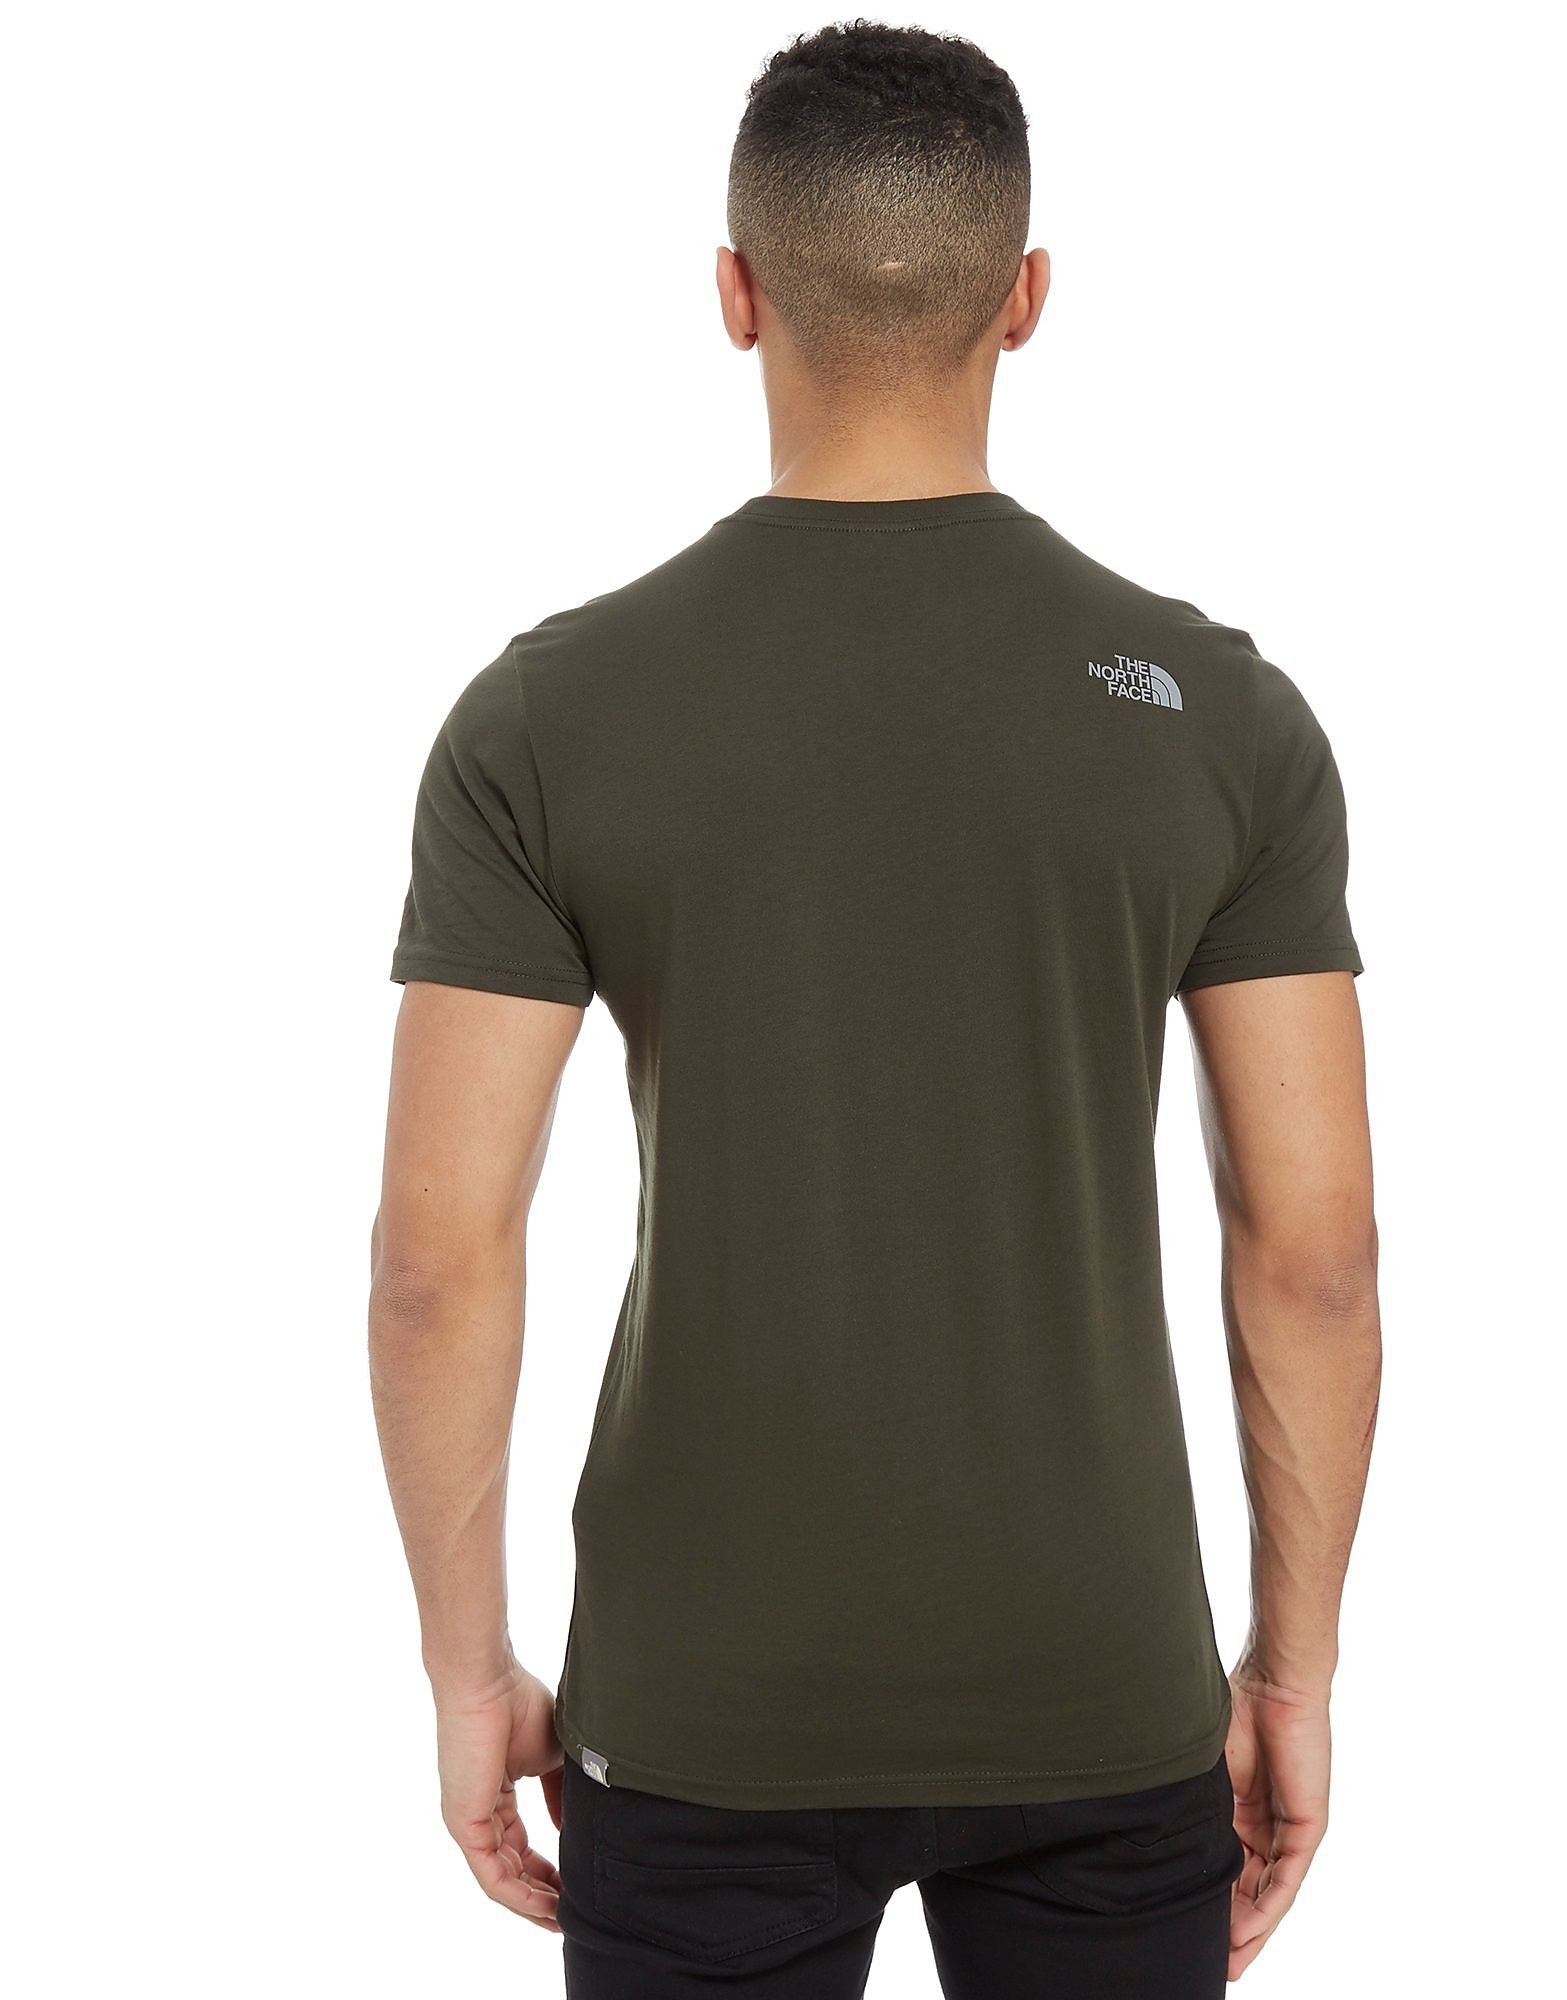 The North Face Reflective Easy Short Sleeve T-Shirt